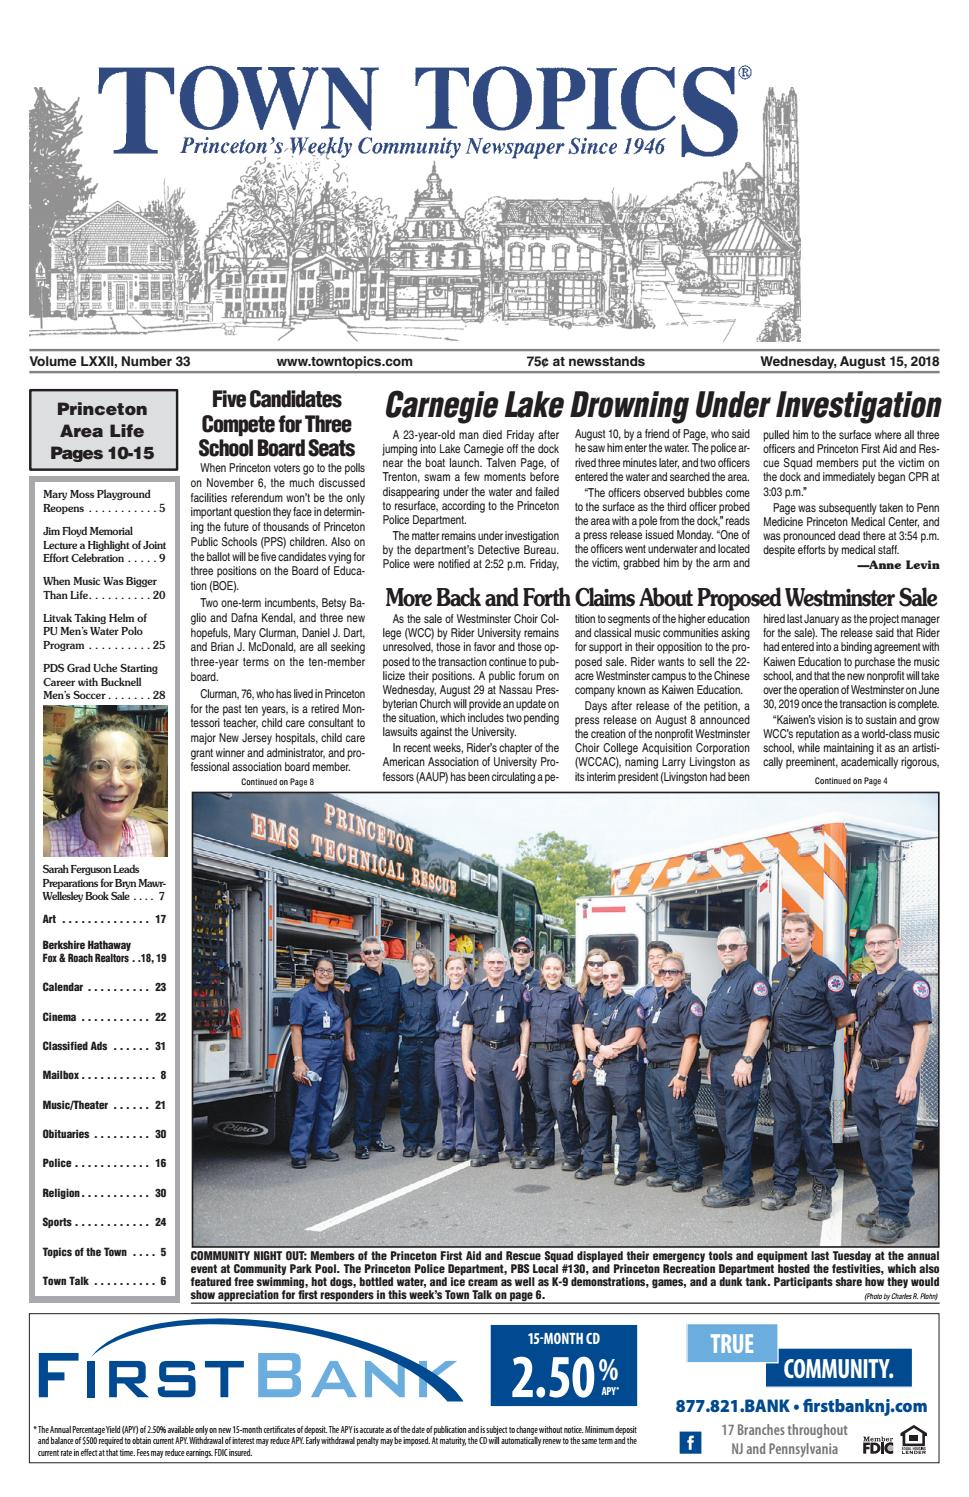 Town Topics Newspaper - August 15, 2018 by Witherspoon Media